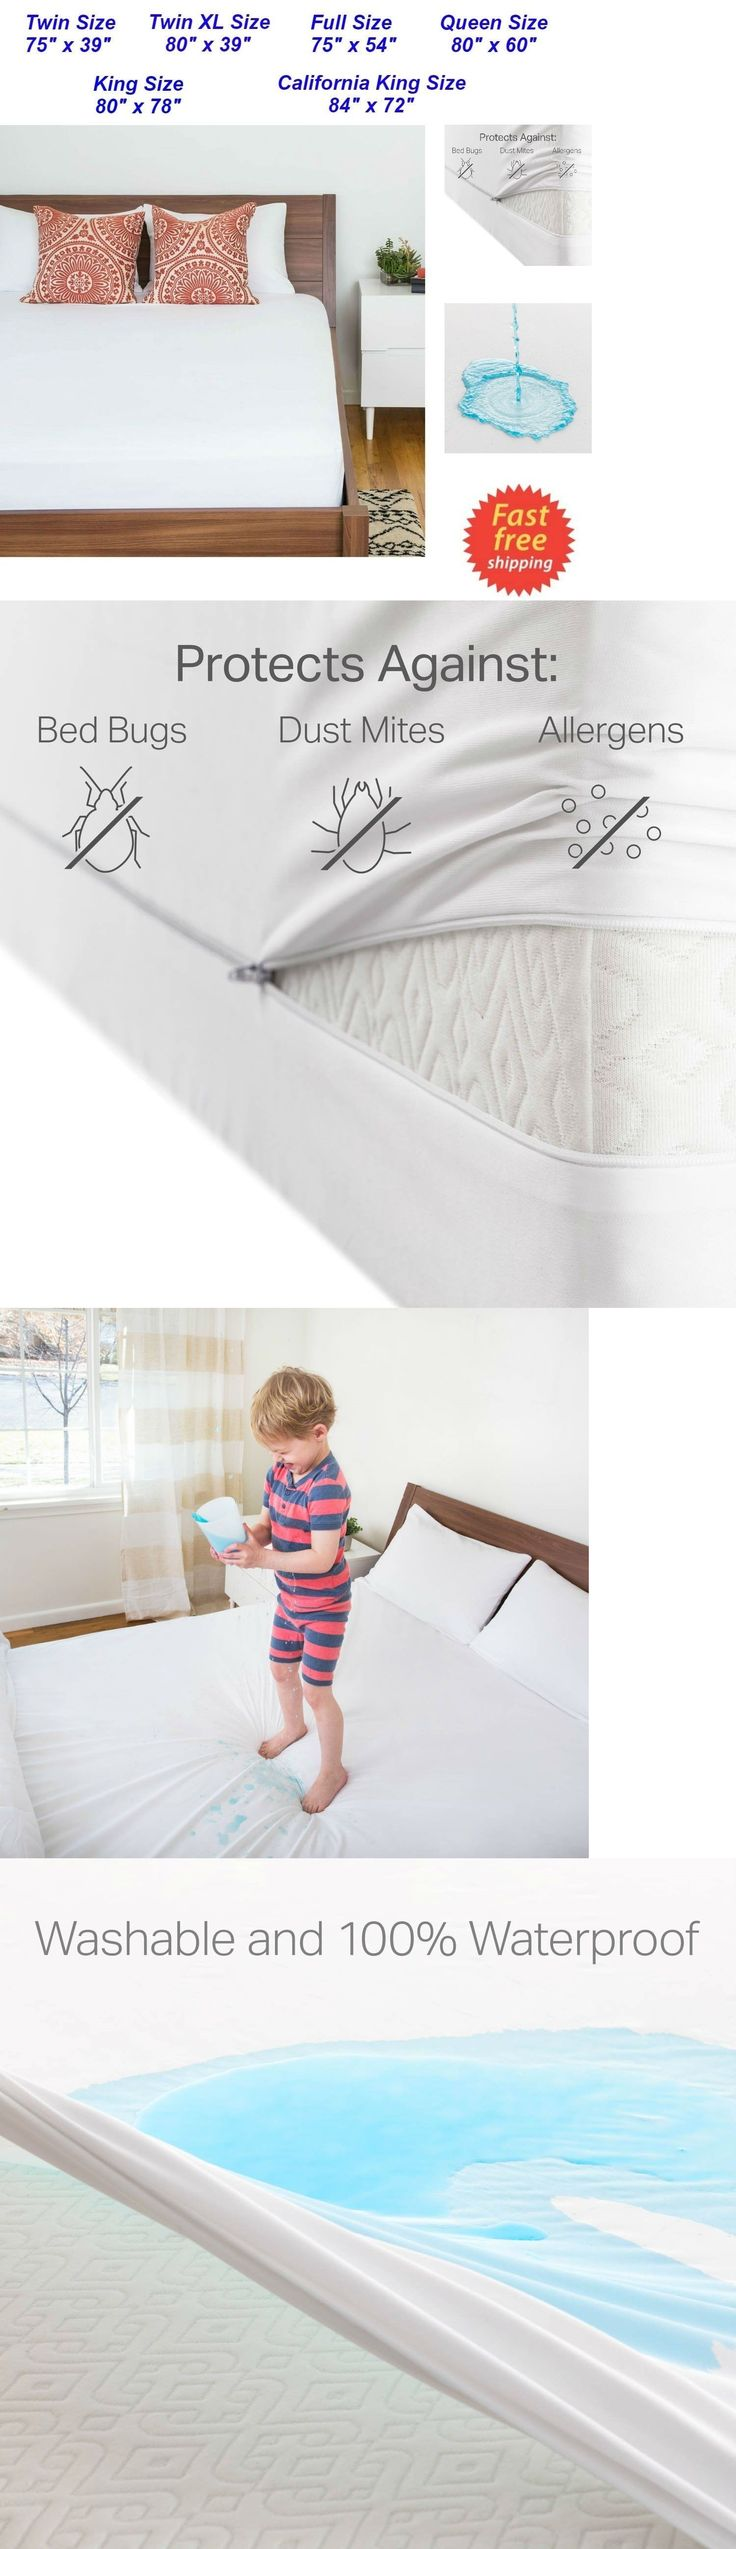 Mattress Pads and Feather Beds 175751: Zippered Waterproof Mattress  Protector King Queen Full Twin Size